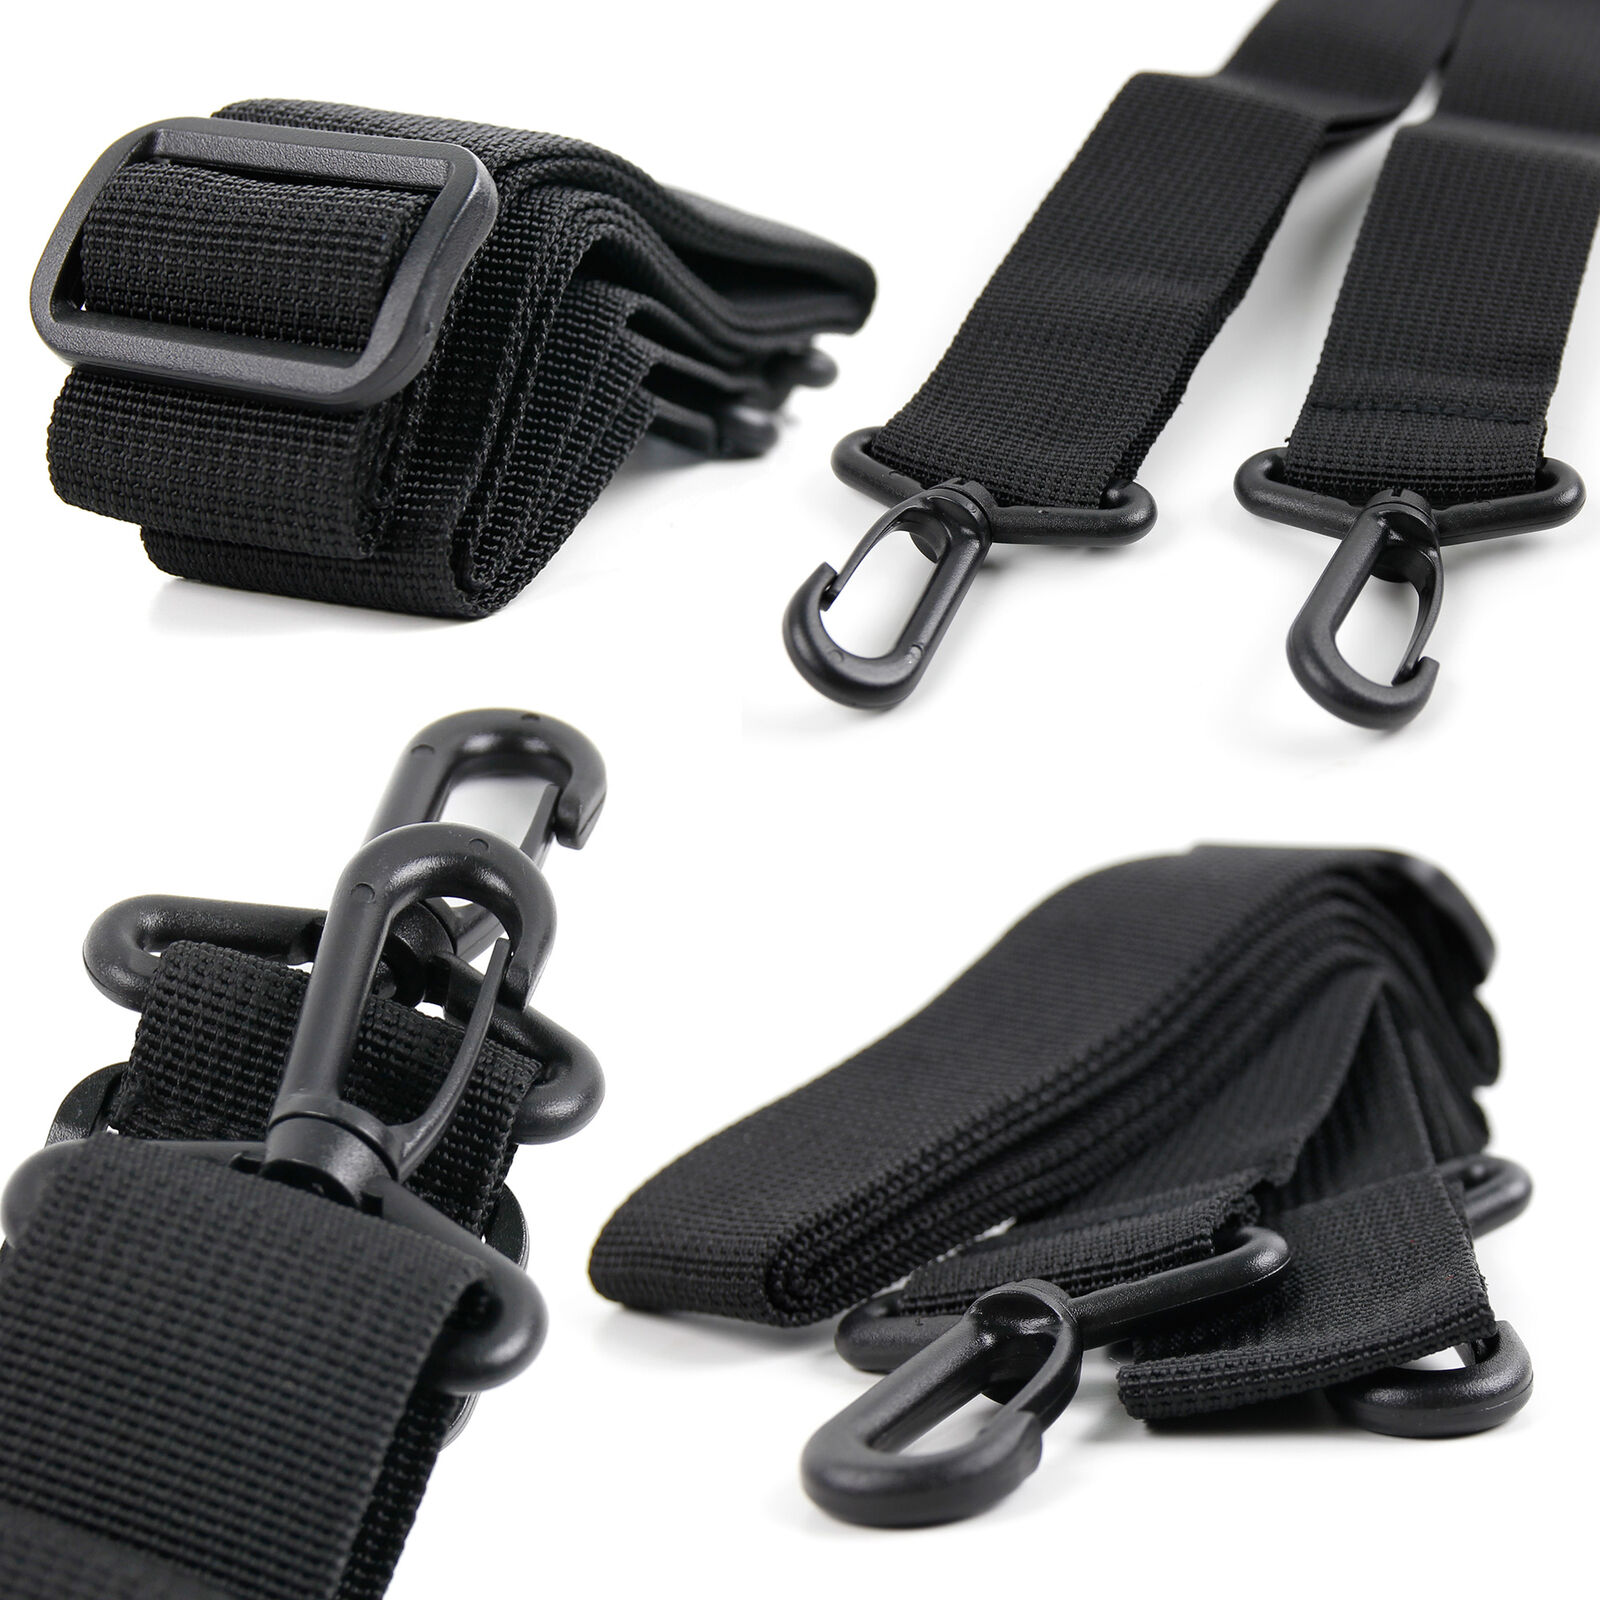 Universal Shoulder Neck Strap For The Canon Powershot G7 X Mark Ii Sx720 Hs